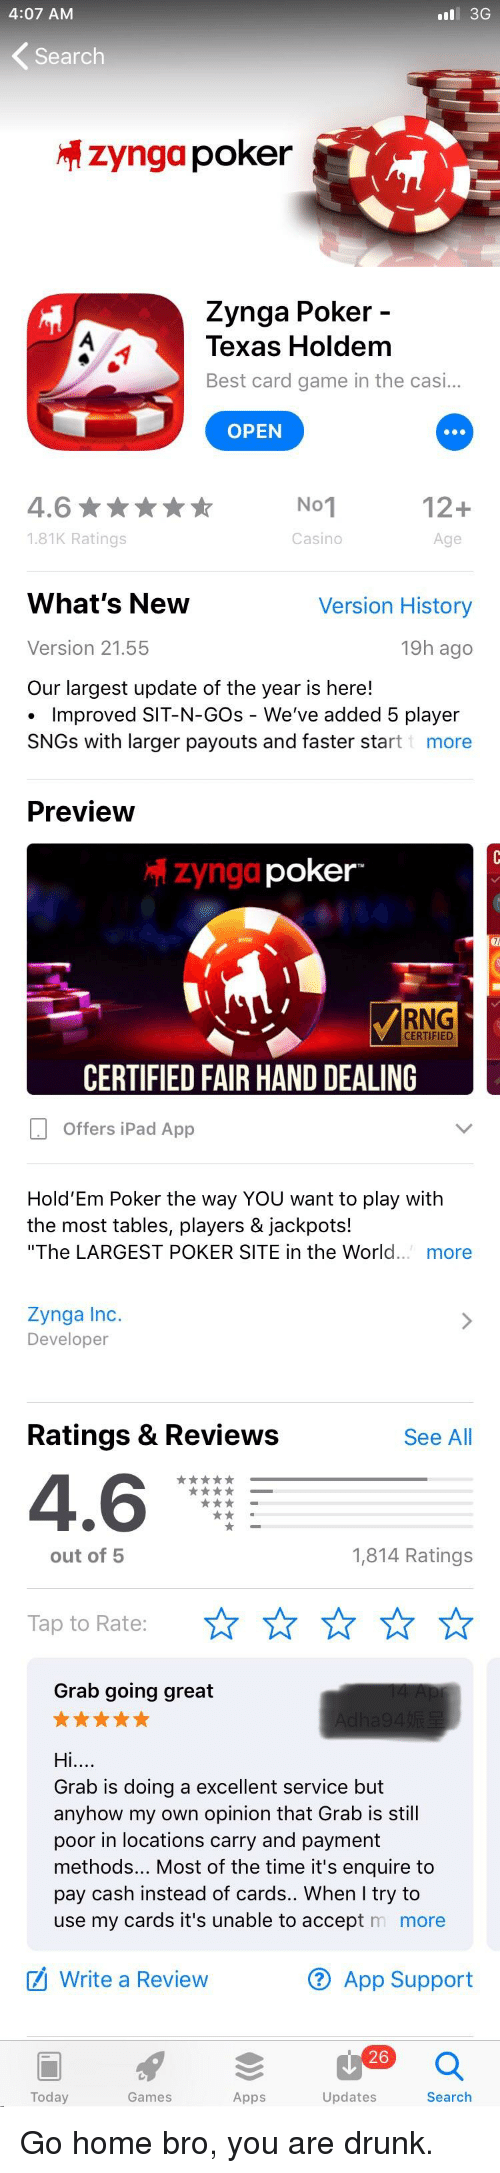 """Drunk, Funny, and Ipad: 4:07 AM  #81 3G  Search  zyngapoker  Zynga Poker  Texas Holdem  Best card game in the casi...  OPEN  12+  4.6  181K Ratings  0  Casino  Age  What's New  Version 21.55  Our largest update of the year is here!  Version History  19h ago  Improved SIT-N-GOs - We've added 5 player  SNGs with larger payouts and faster start more  Preview  zyngd  poker-  RNG  CERTIFIED  CERTIFIED FAIR HAND DEALING  Offers iPad App  Hold'Em Poker the way YOU want to play with  the most tables, players & jackpots!  """"The LARGEST POKER SITE in the World. more  Zynga Inc.  Developer  Ratings & Review:s  See All  4.6  out of5  1,814 Ratings  Tap to Rate:  Grab going great  Hi  Grab is doing a excellent service but  anyhow my own opinion that Grab is still  poor in locations carry and payment  methods... Most of the time it's enquire to  pay cash instead of cards.. When I try to  use my cards it's unable to accept m more  Write a Review  ® App Support  26  Today  Games  Apps  Updates  Search"""